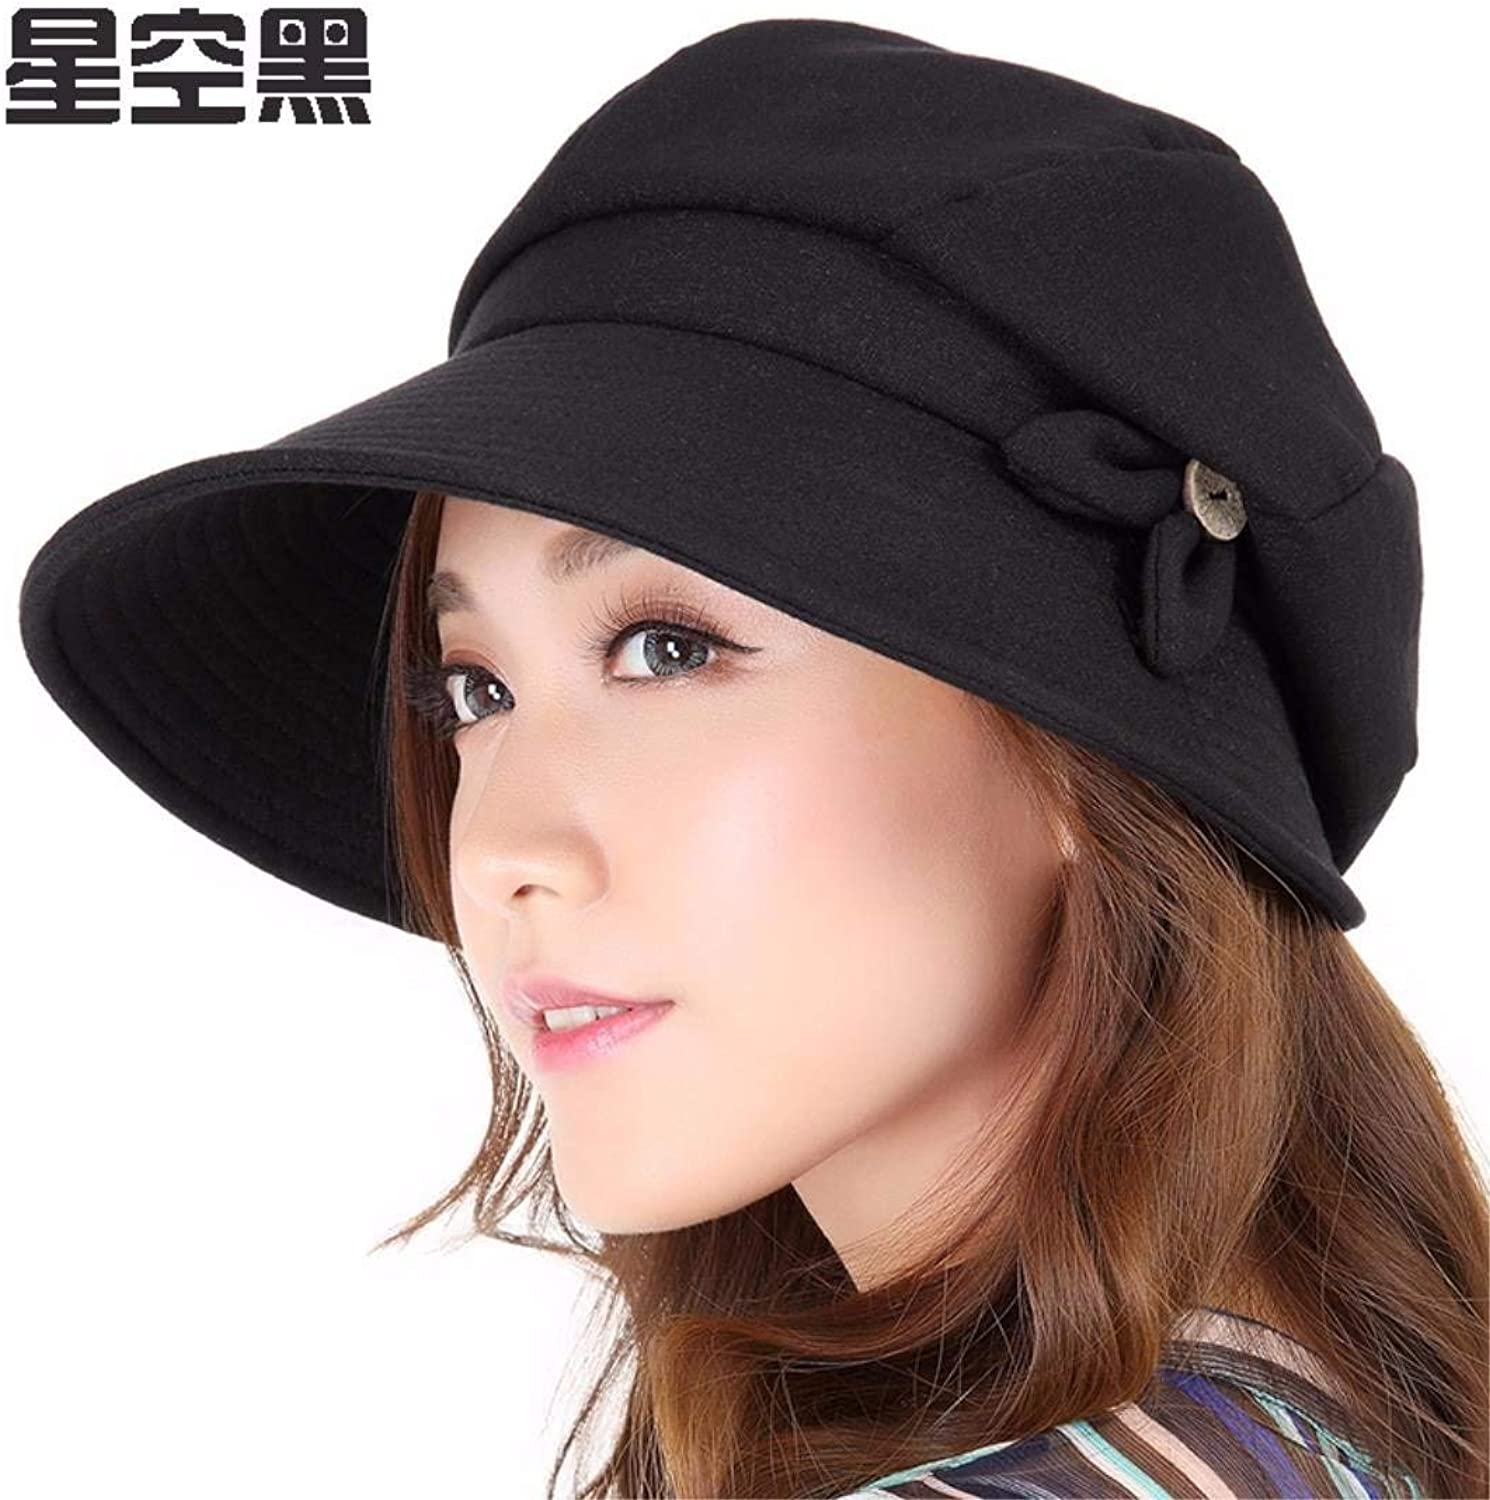 Chuiqingnet Outdoor Visor female fashion spring summer leisure cycling sunscreen Female Cap new spring